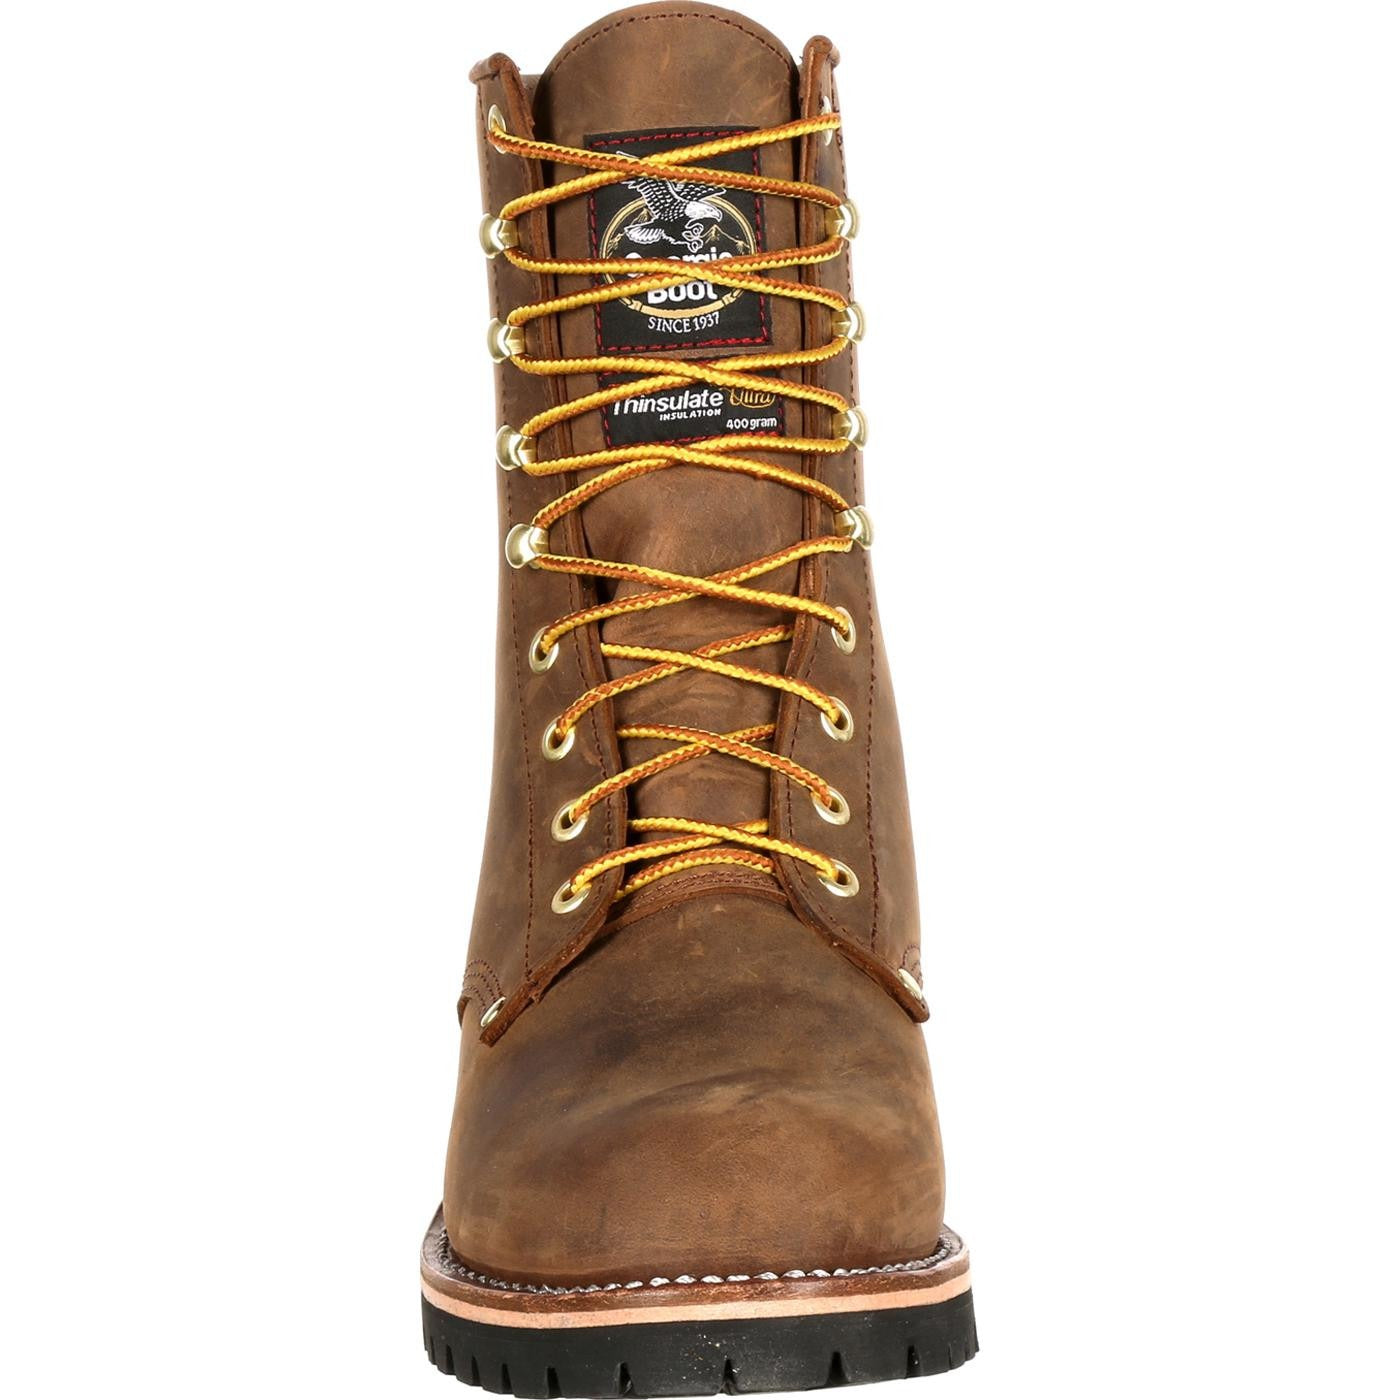 992261e6dd2 Men's Georgia Boots Steel Toe Waterproof Insulated Logger Work Boots